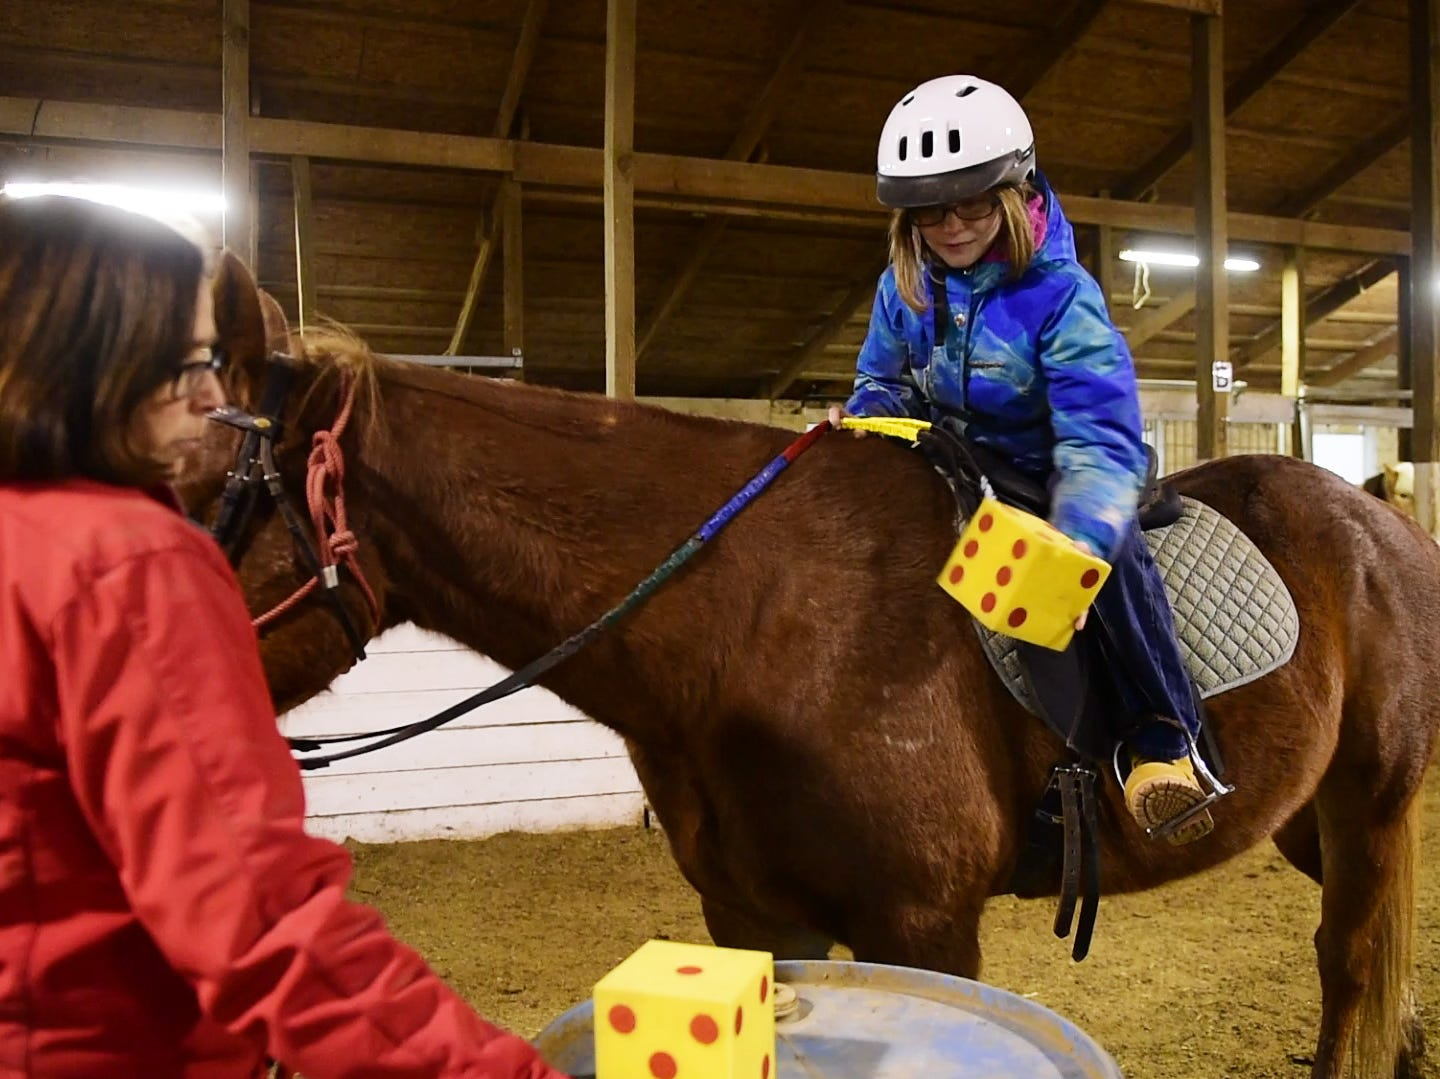 Charlie Hilton, 10, of Port Clinton plays a game to work on coordination during her lesson with volunteer leader Sue Hoffman.